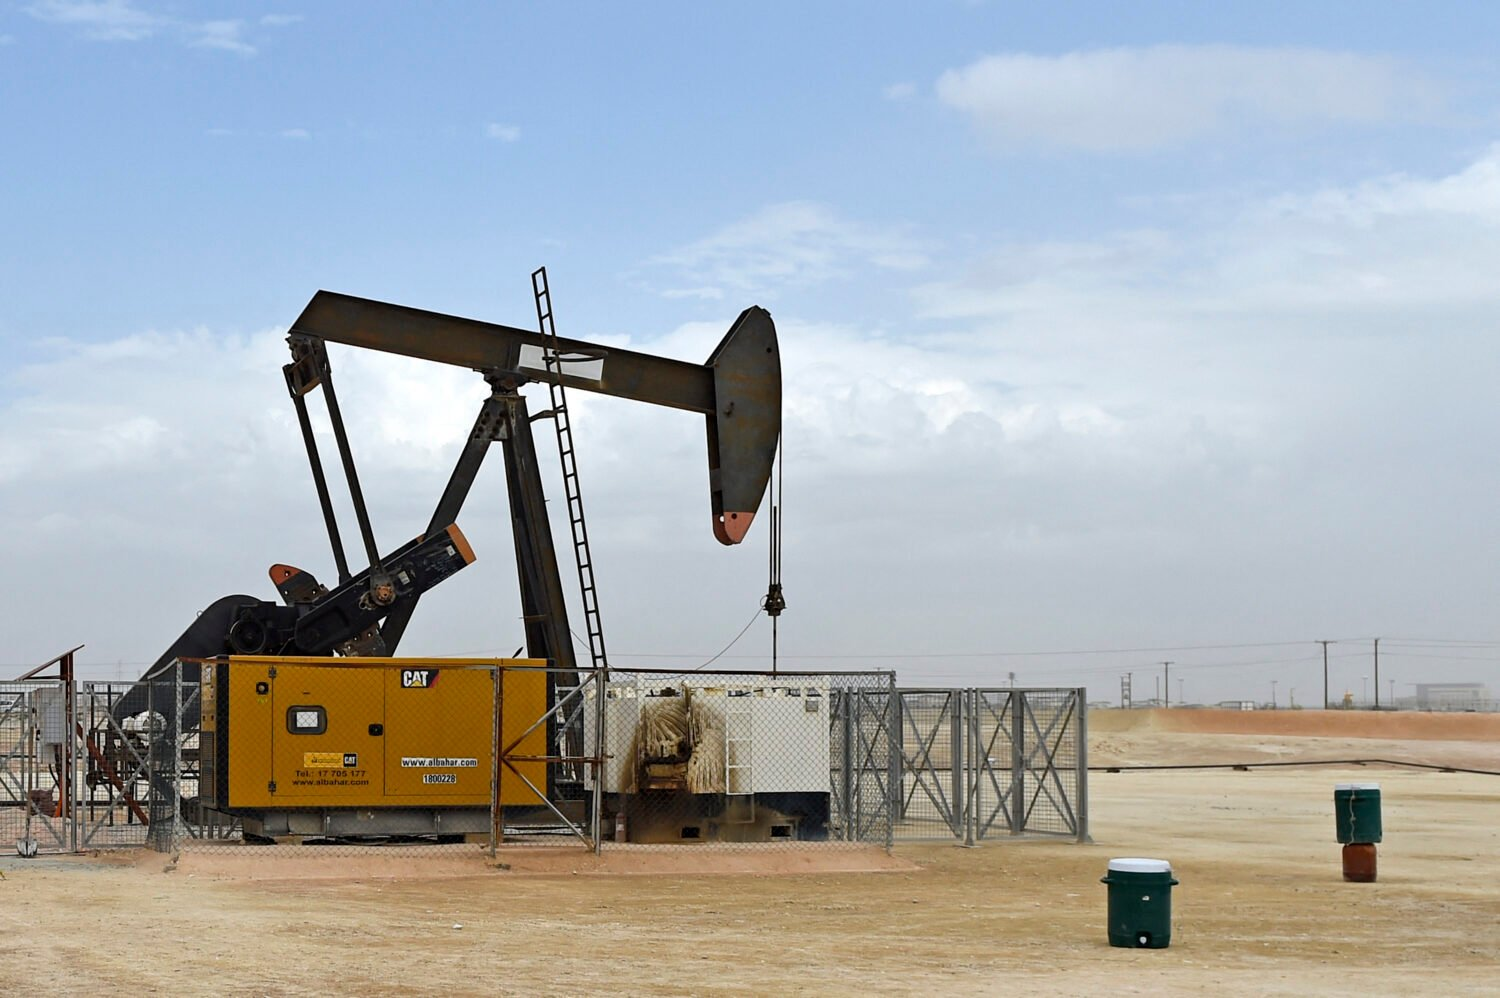 A pumpjack operates in the desert oil fields of Sakhir in southern Bahrain